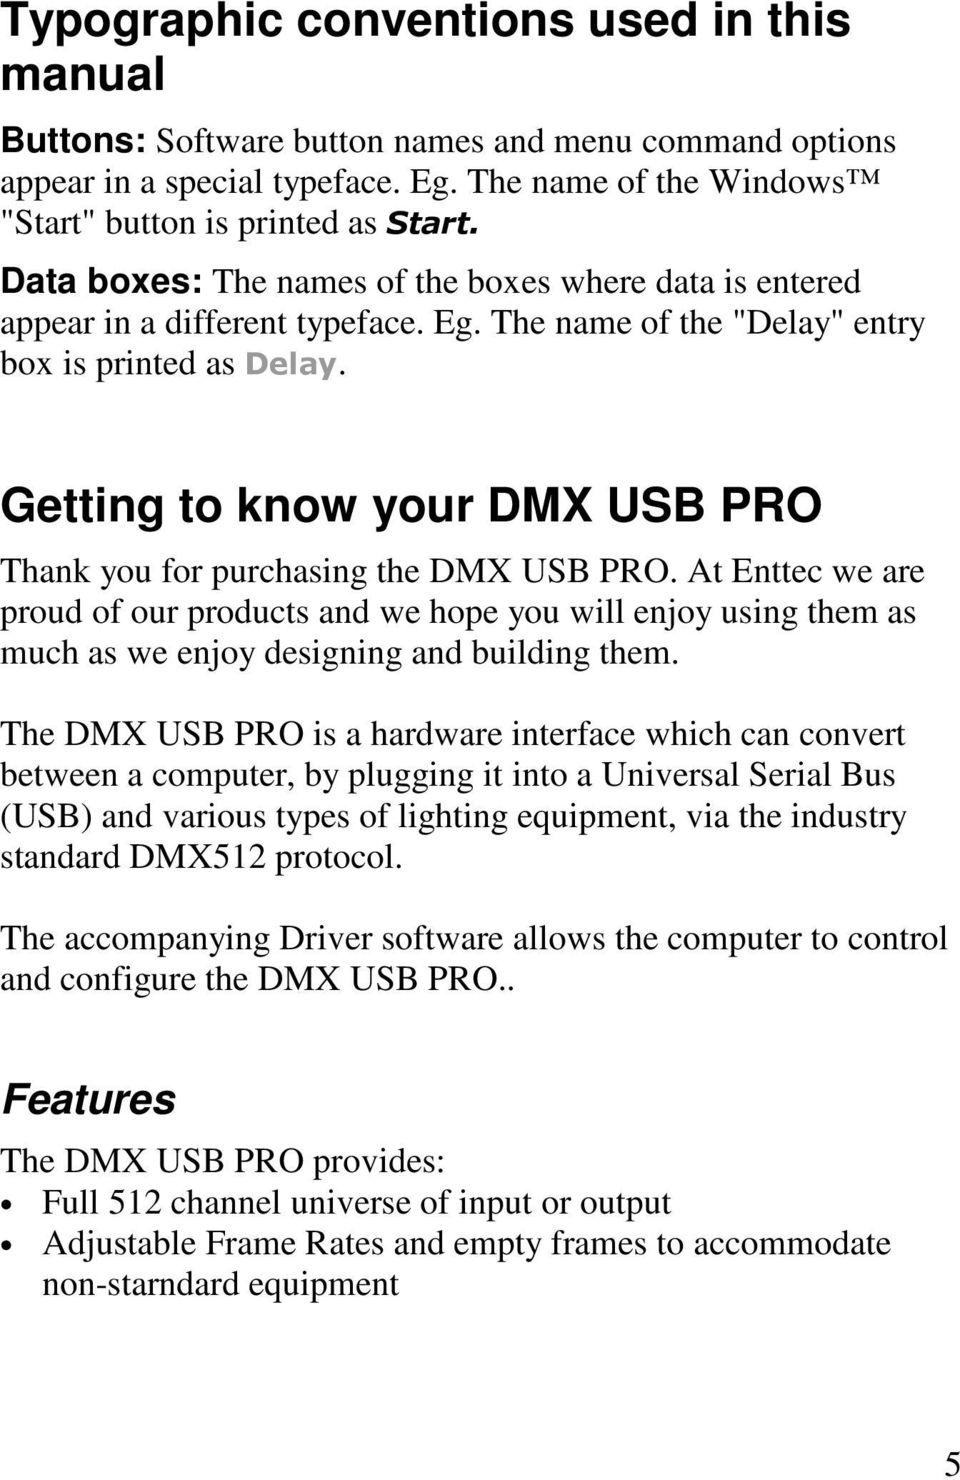 Getting to know your DMX USB PRO Thank you for purchasing the DMX USB PRO. At Enttec we are proud of our products and we hope you will enjoy using them as much as we enjoy designing and building them.